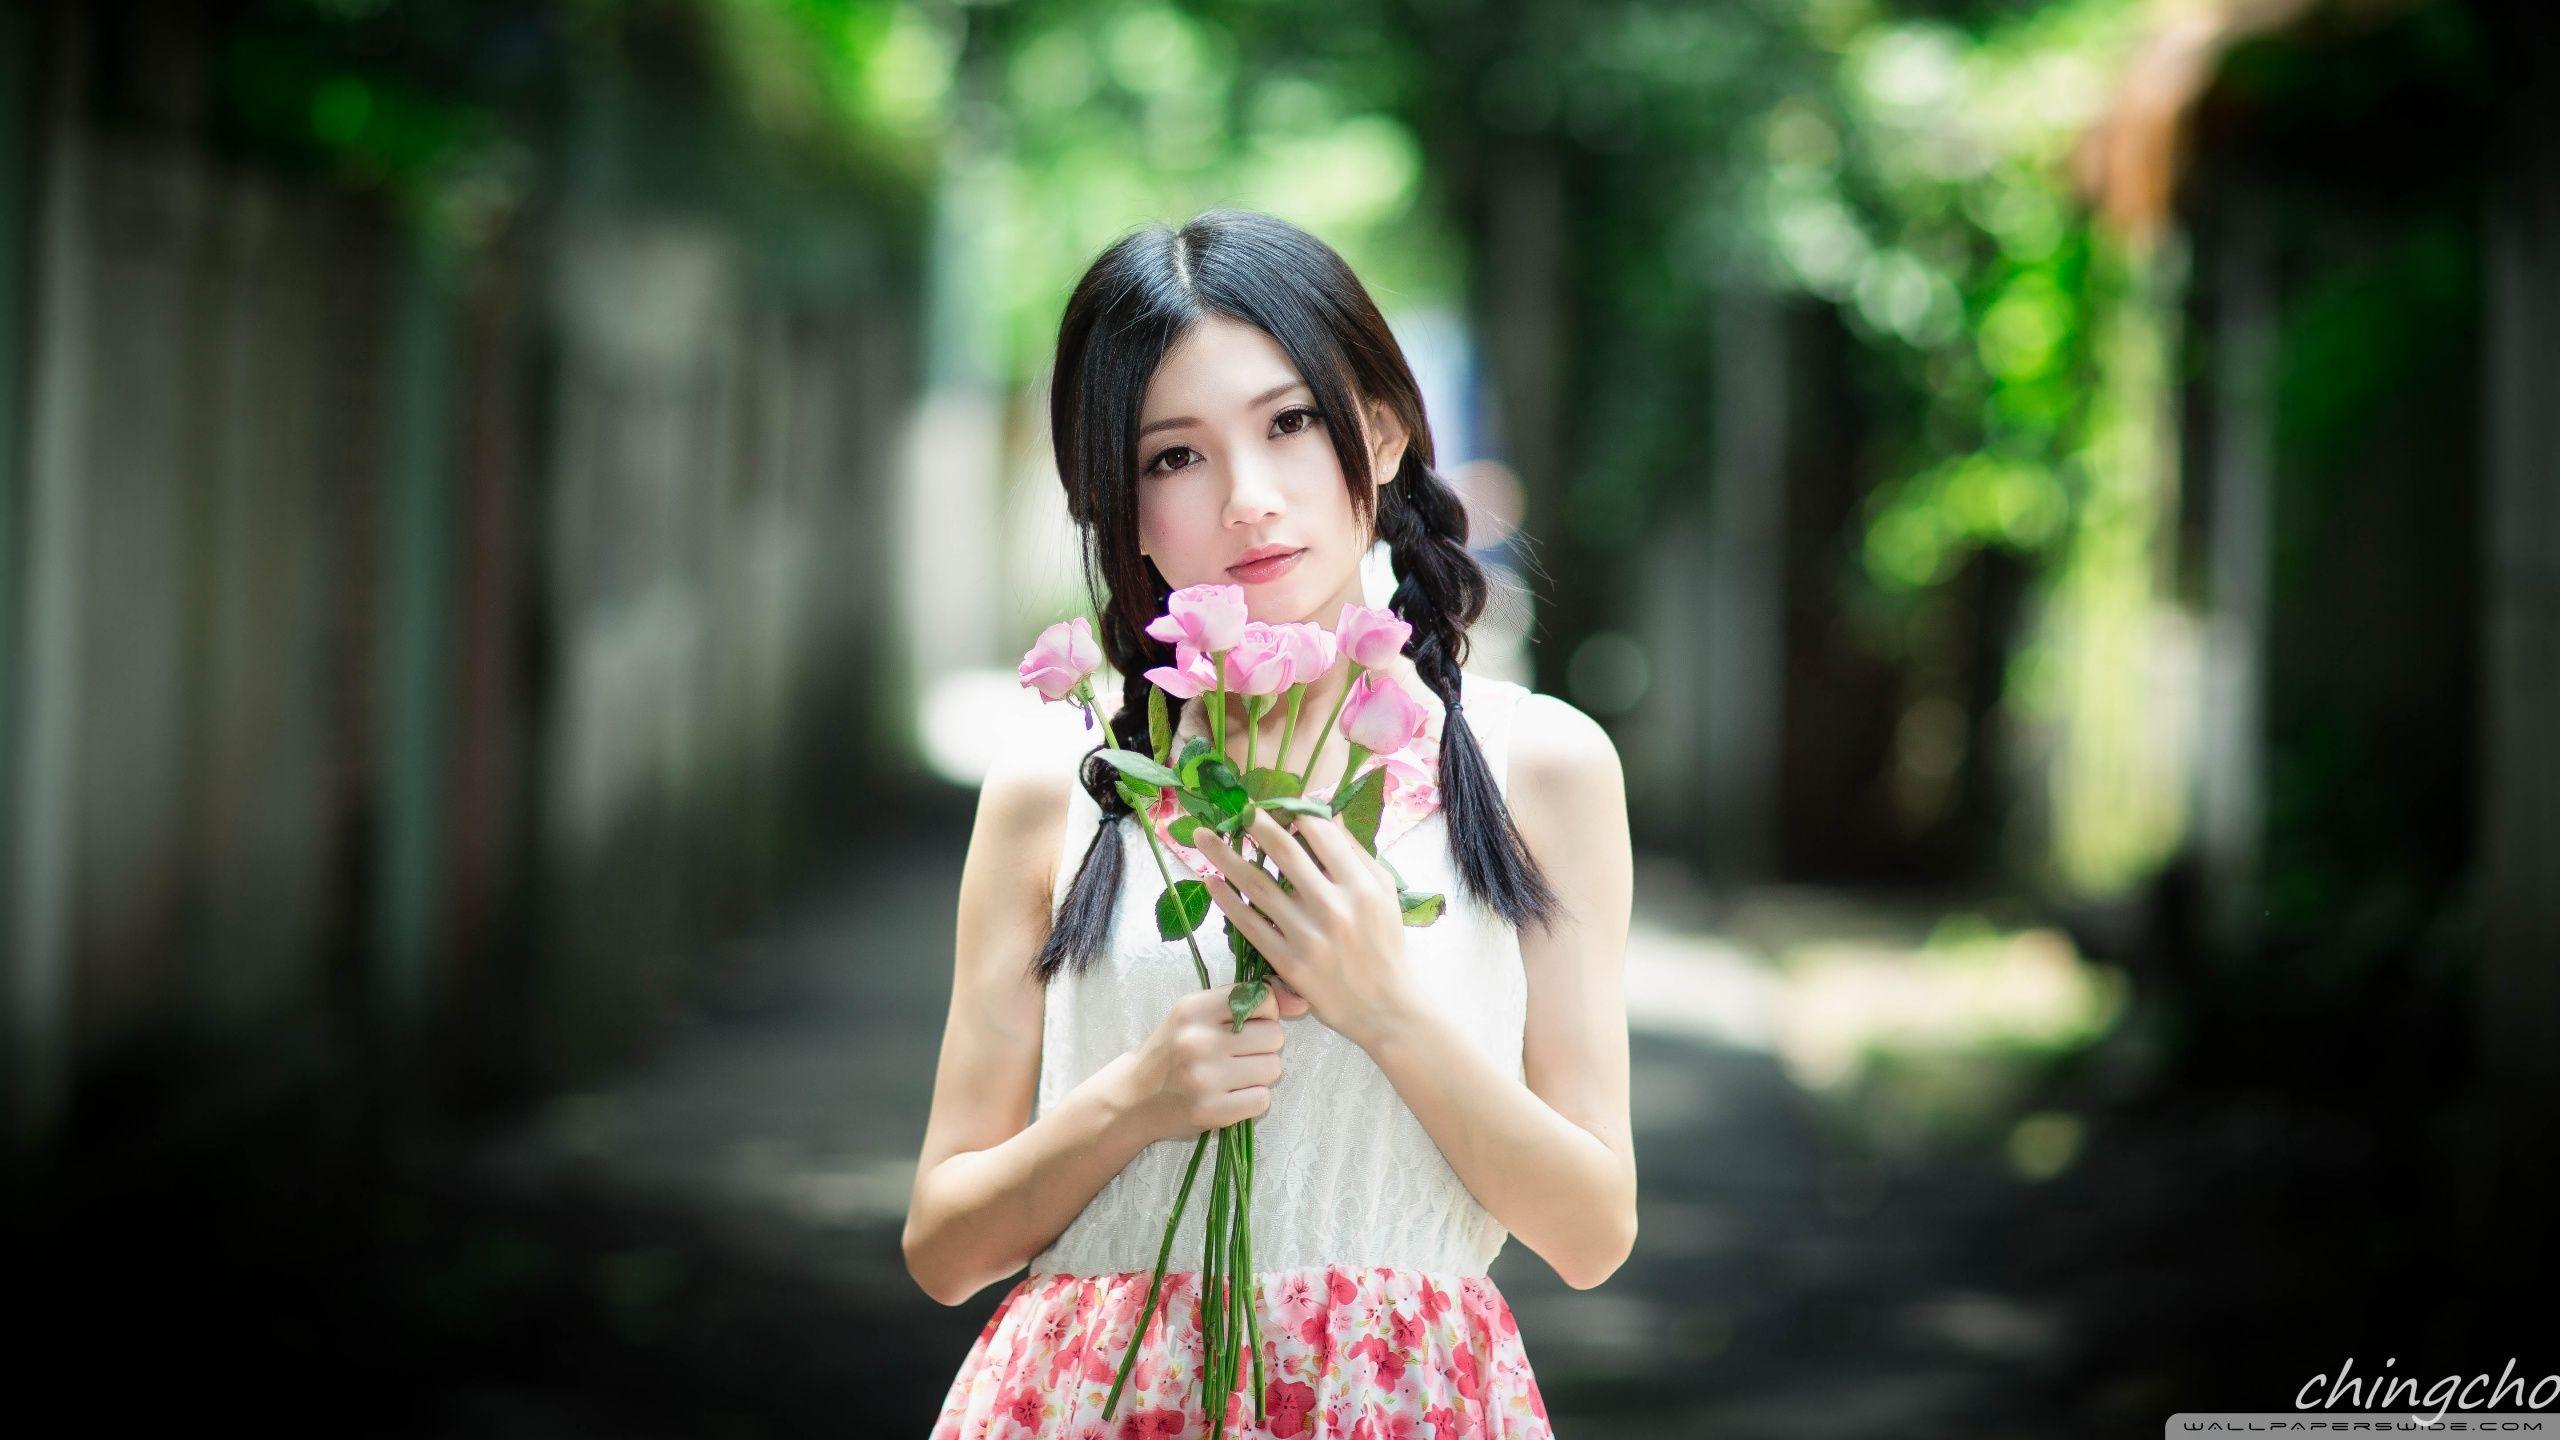 Of girls pictures beautiful chinese Beautiful Chinese